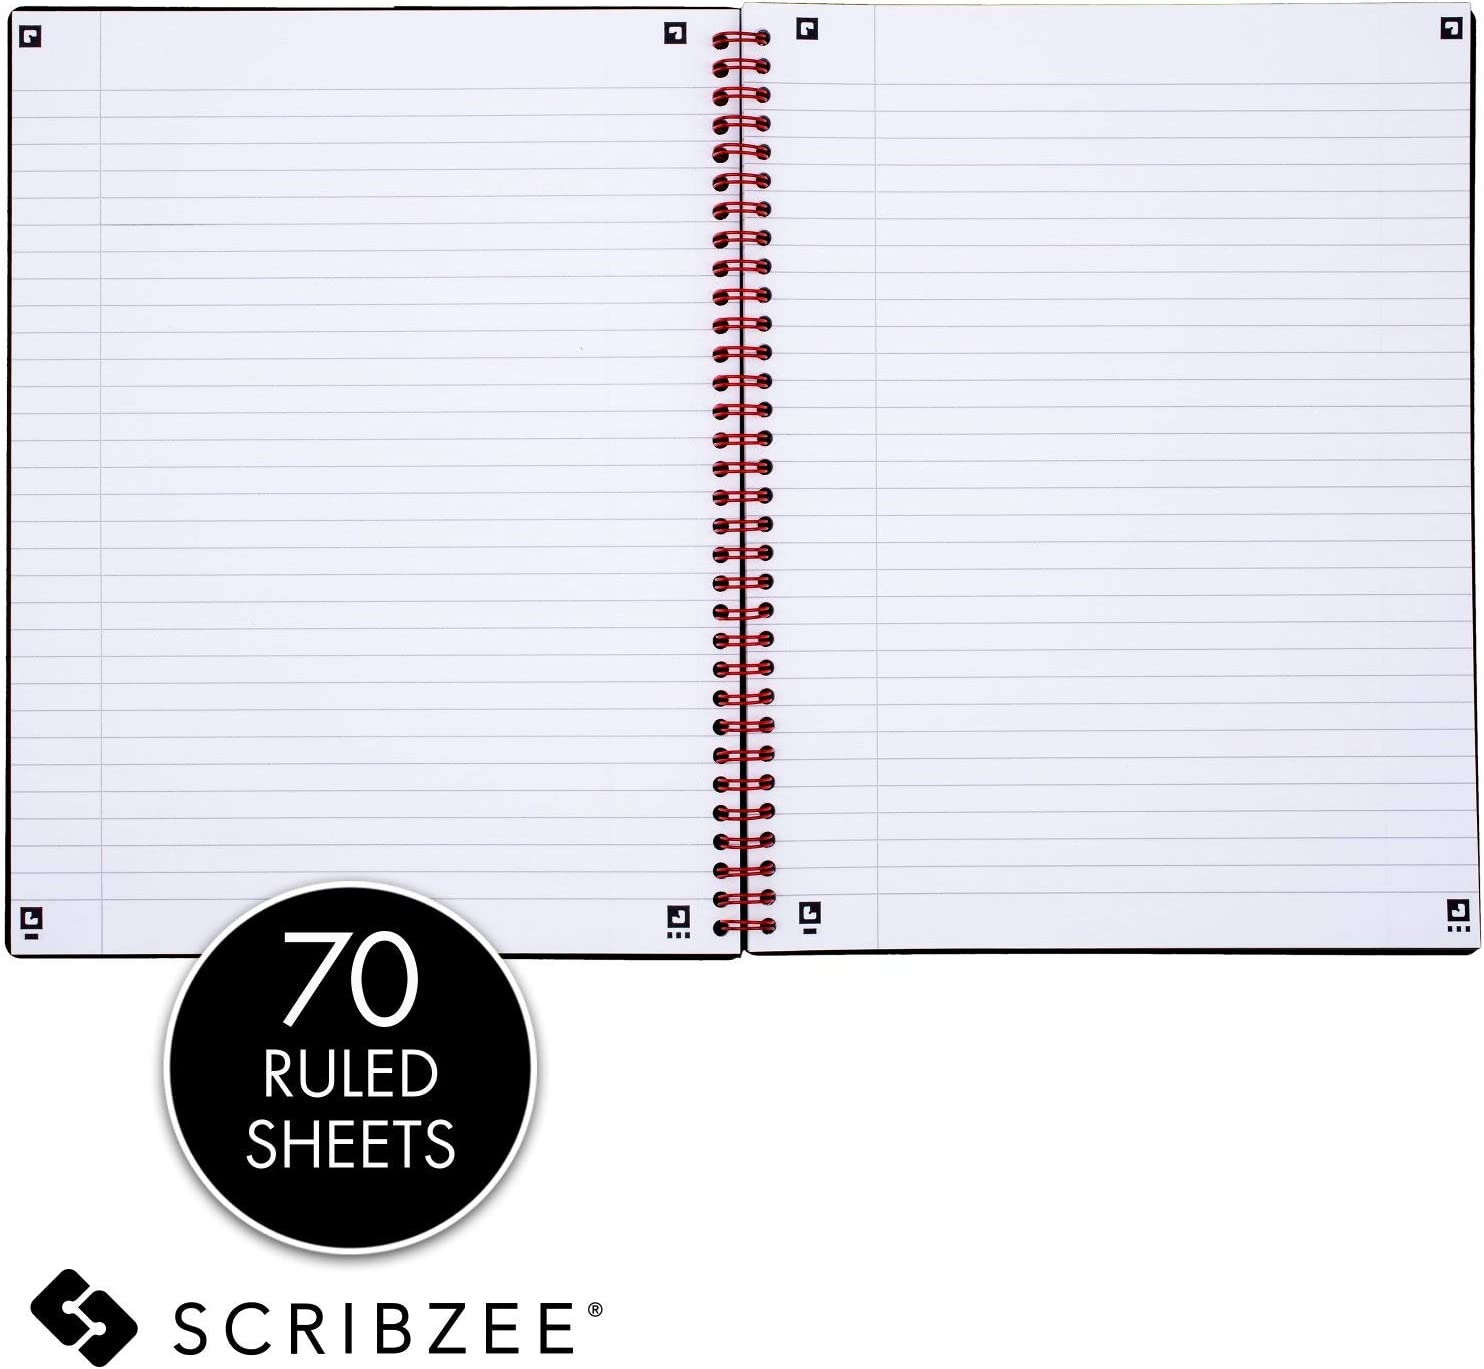 K66652 Black n Red Twin Spiral Poly Cover Notebook Pack of 1 70 Ruled Sheets Black Large 11 x 8-1//2 inches